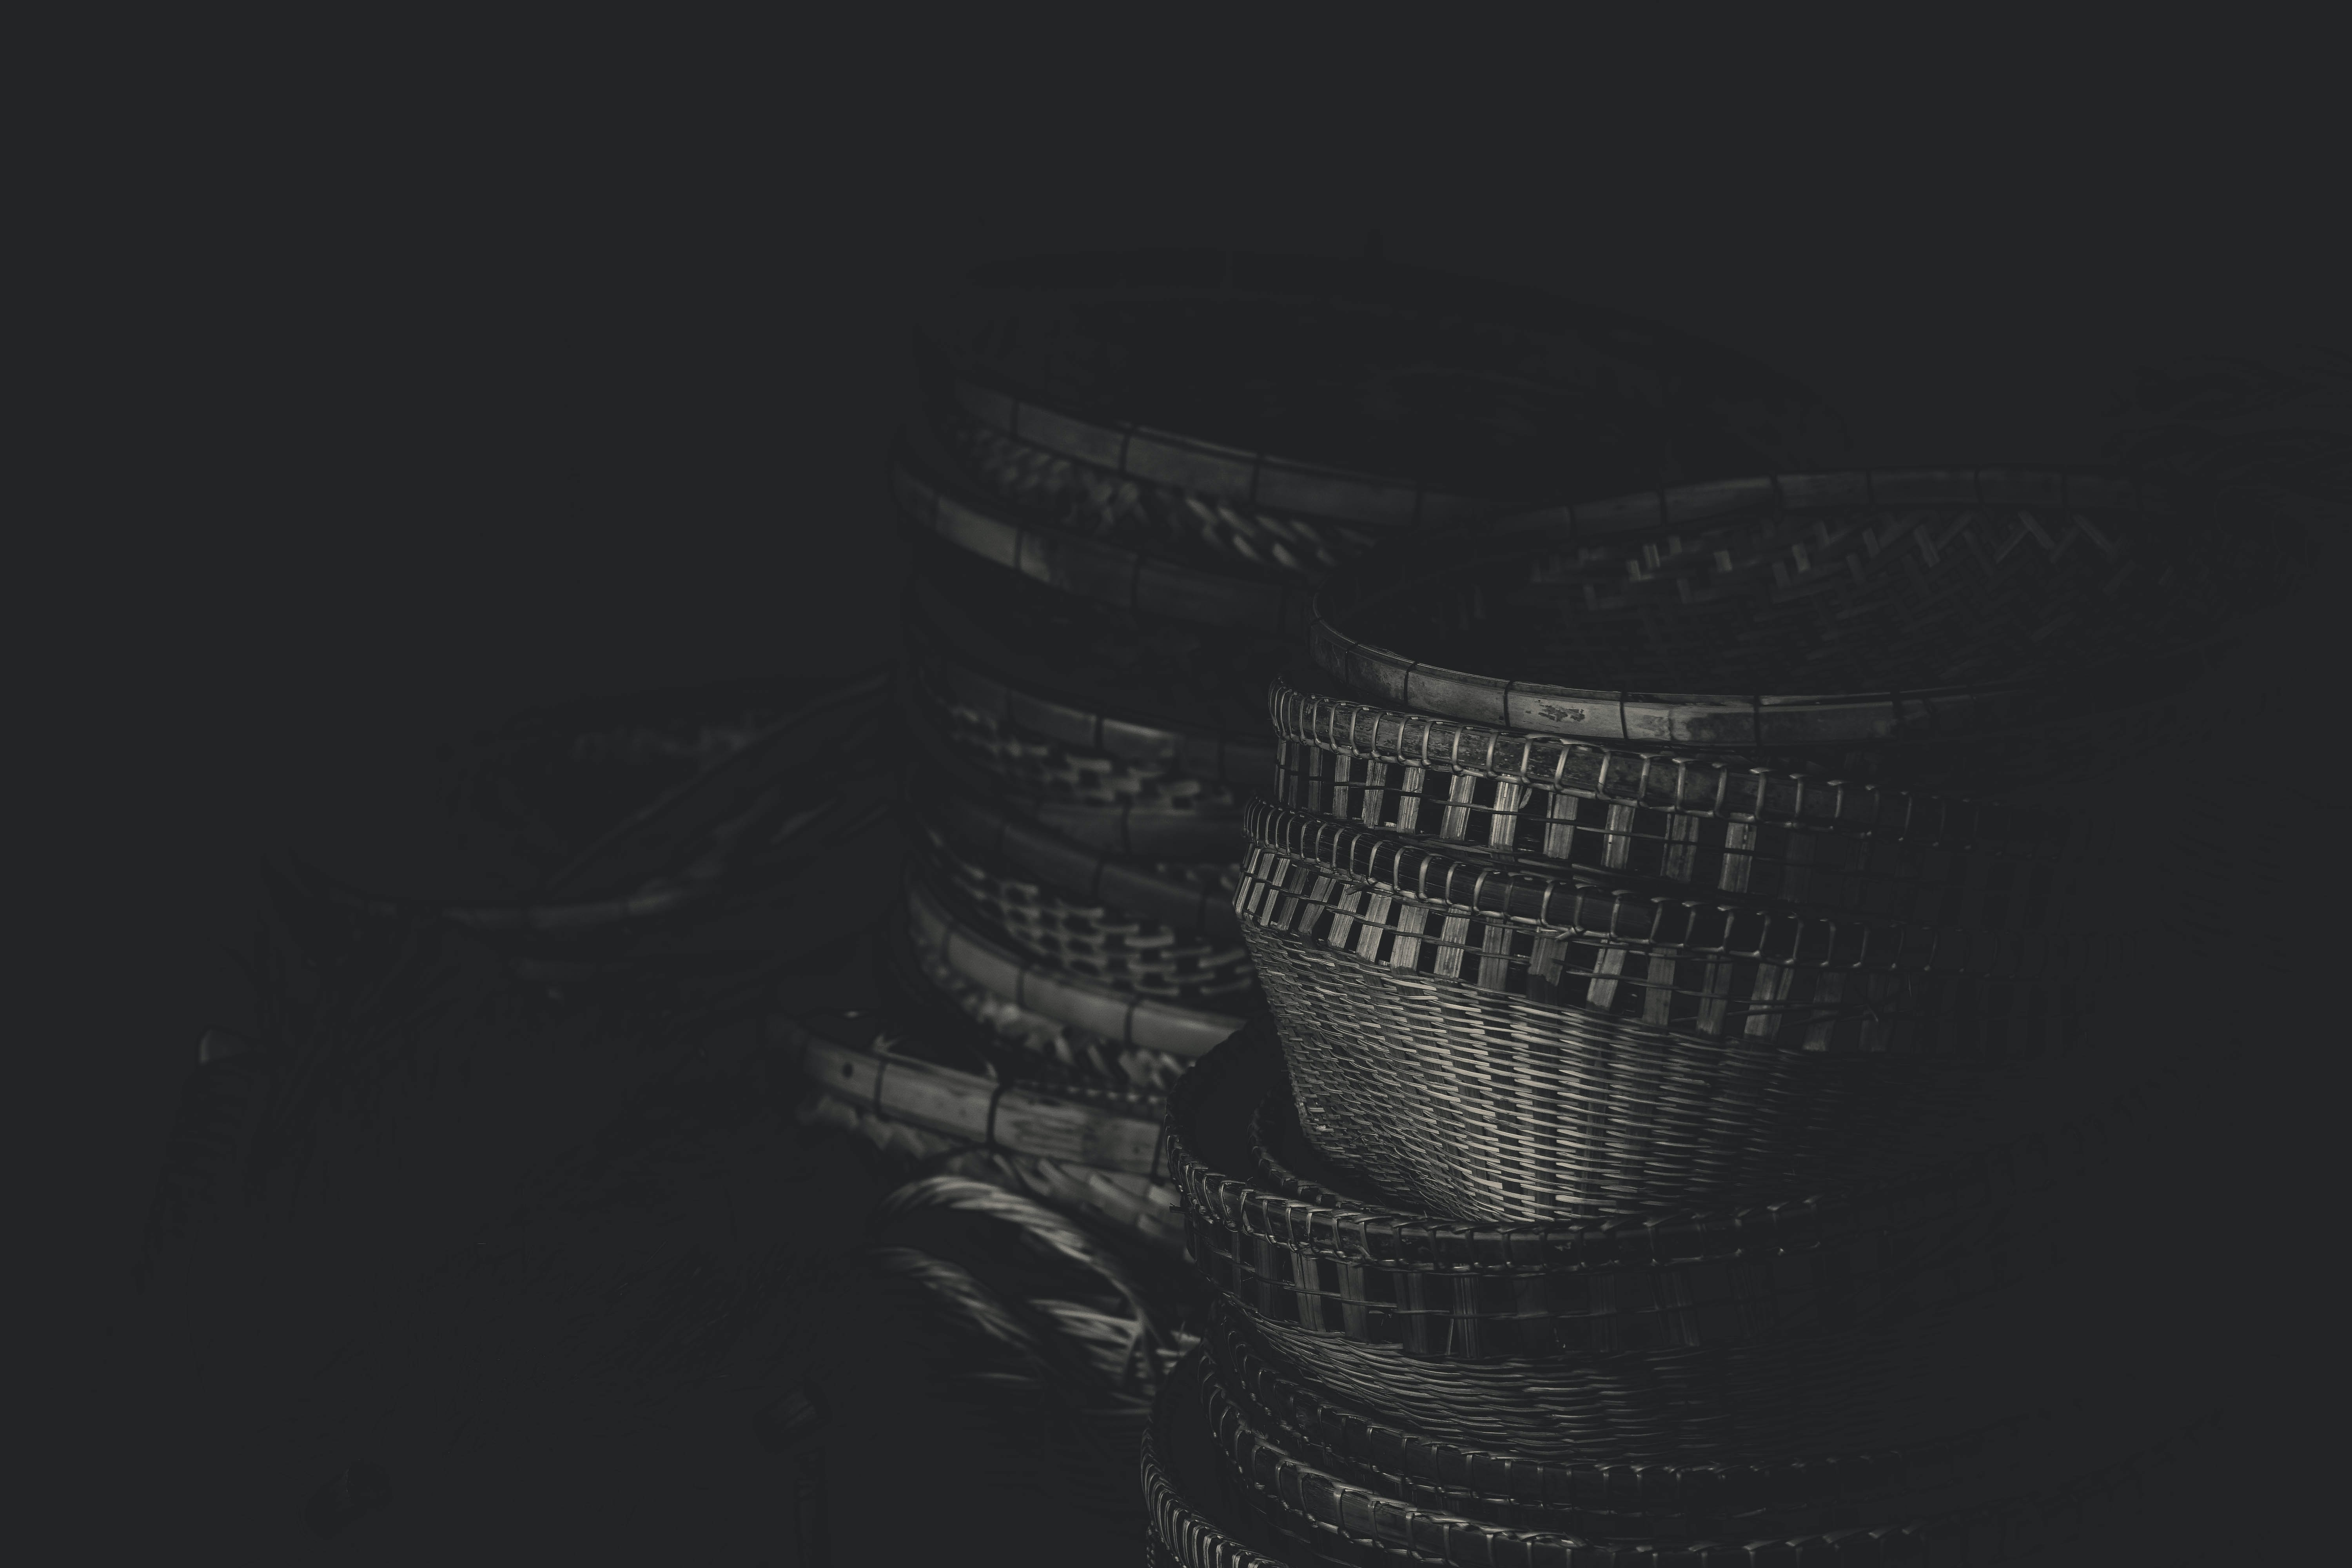 grayscale photography of wicker baskets